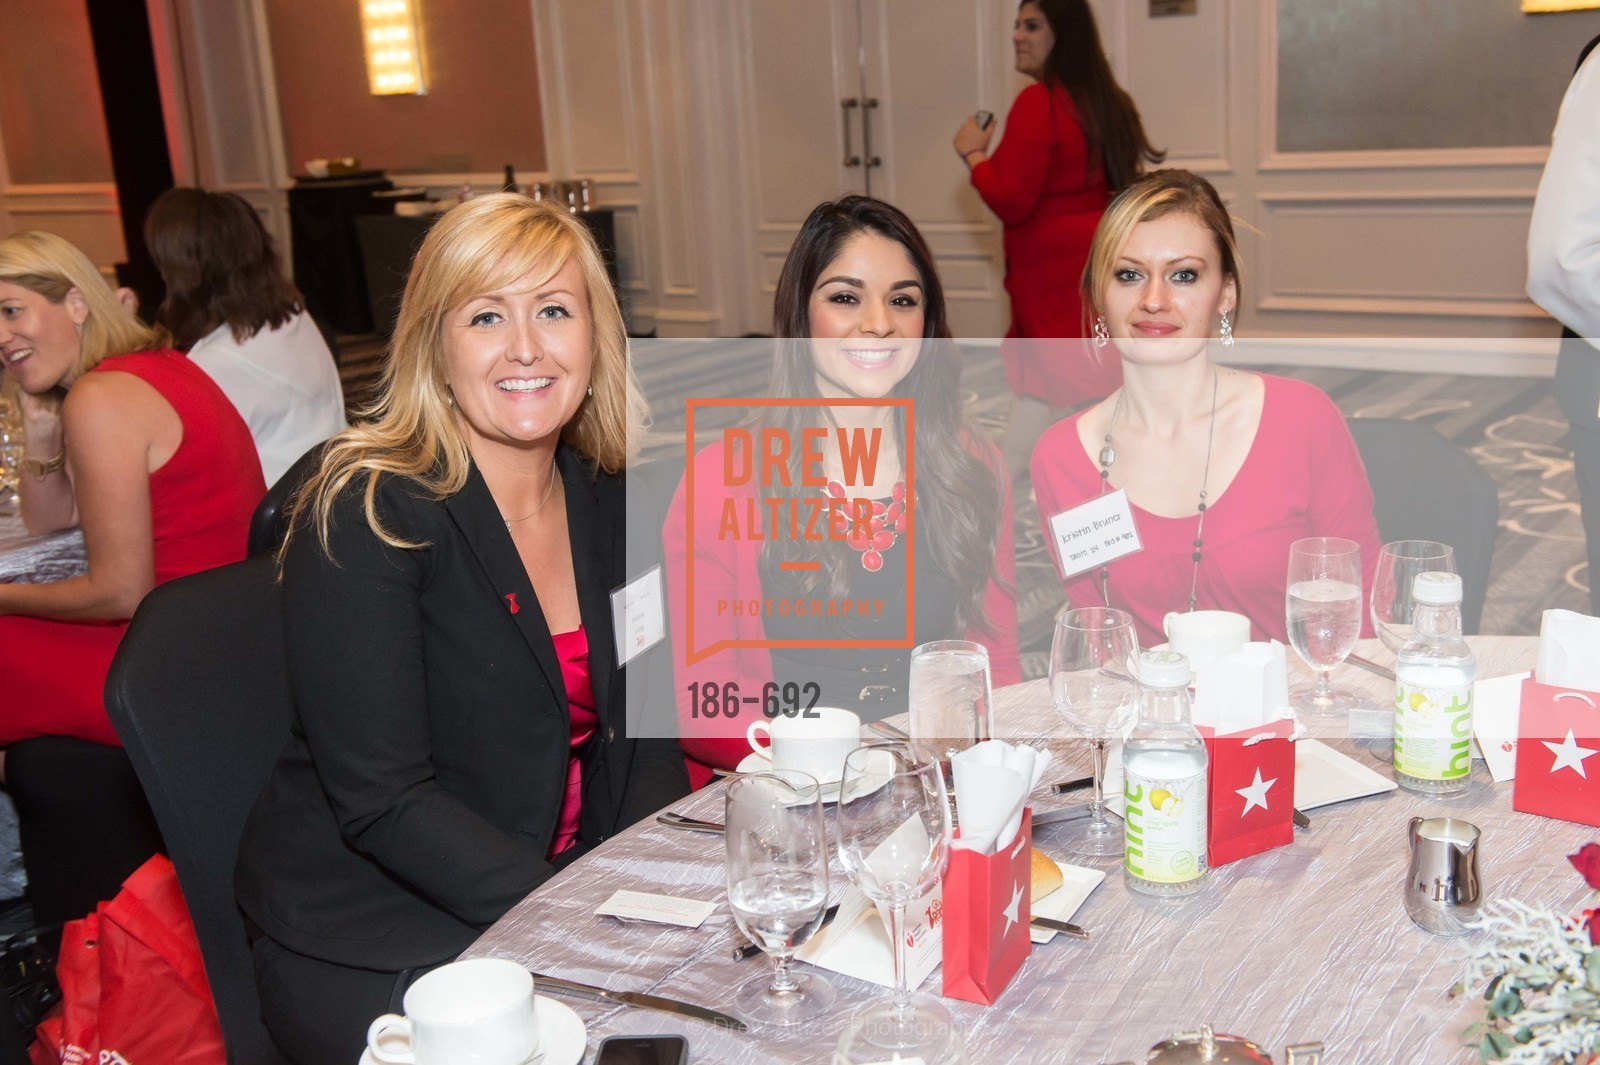 Andrea Long, Jessica Mendoza, Kristin Bruner, 2015 GoRed for Women Luncheon, US, May 2nd, 2015,Drew Altizer, Drew Altizer Photography, full-service agency, private events, San Francisco photographer, photographer california